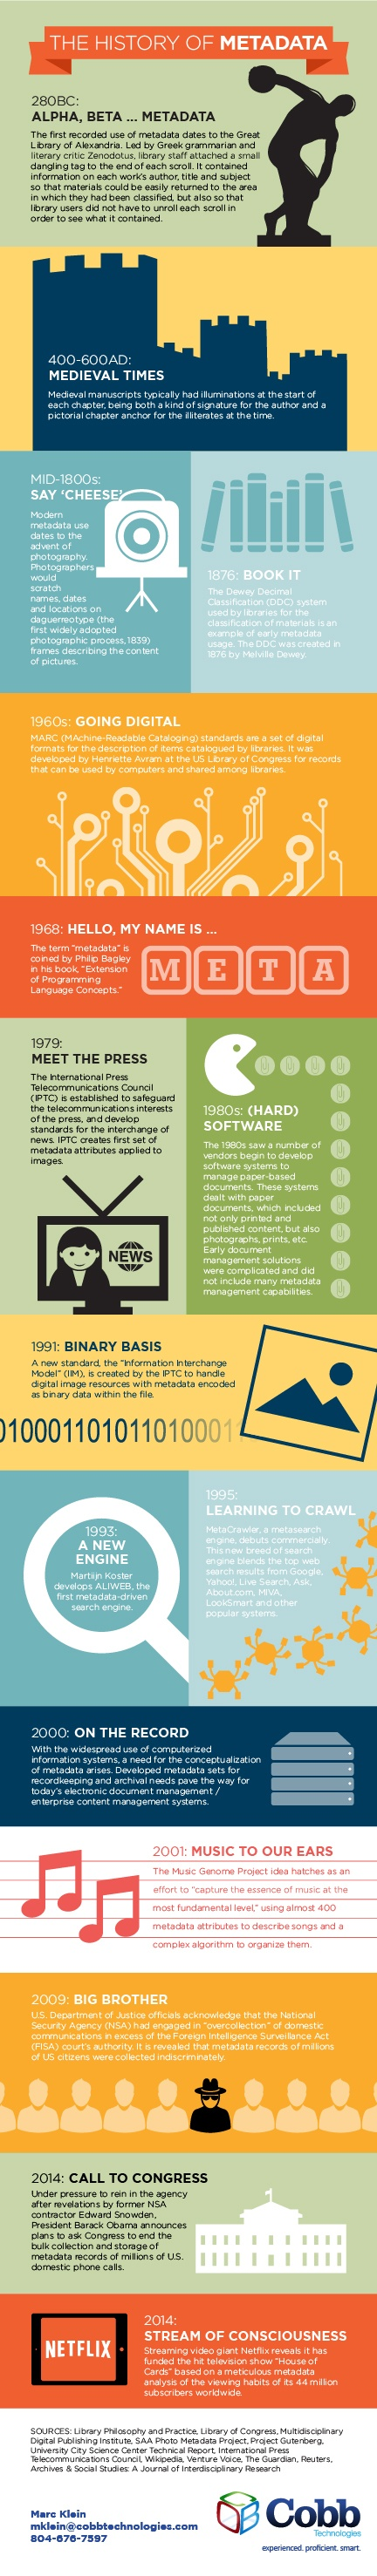 Cobb-Infographic---The-History-of-Metadata